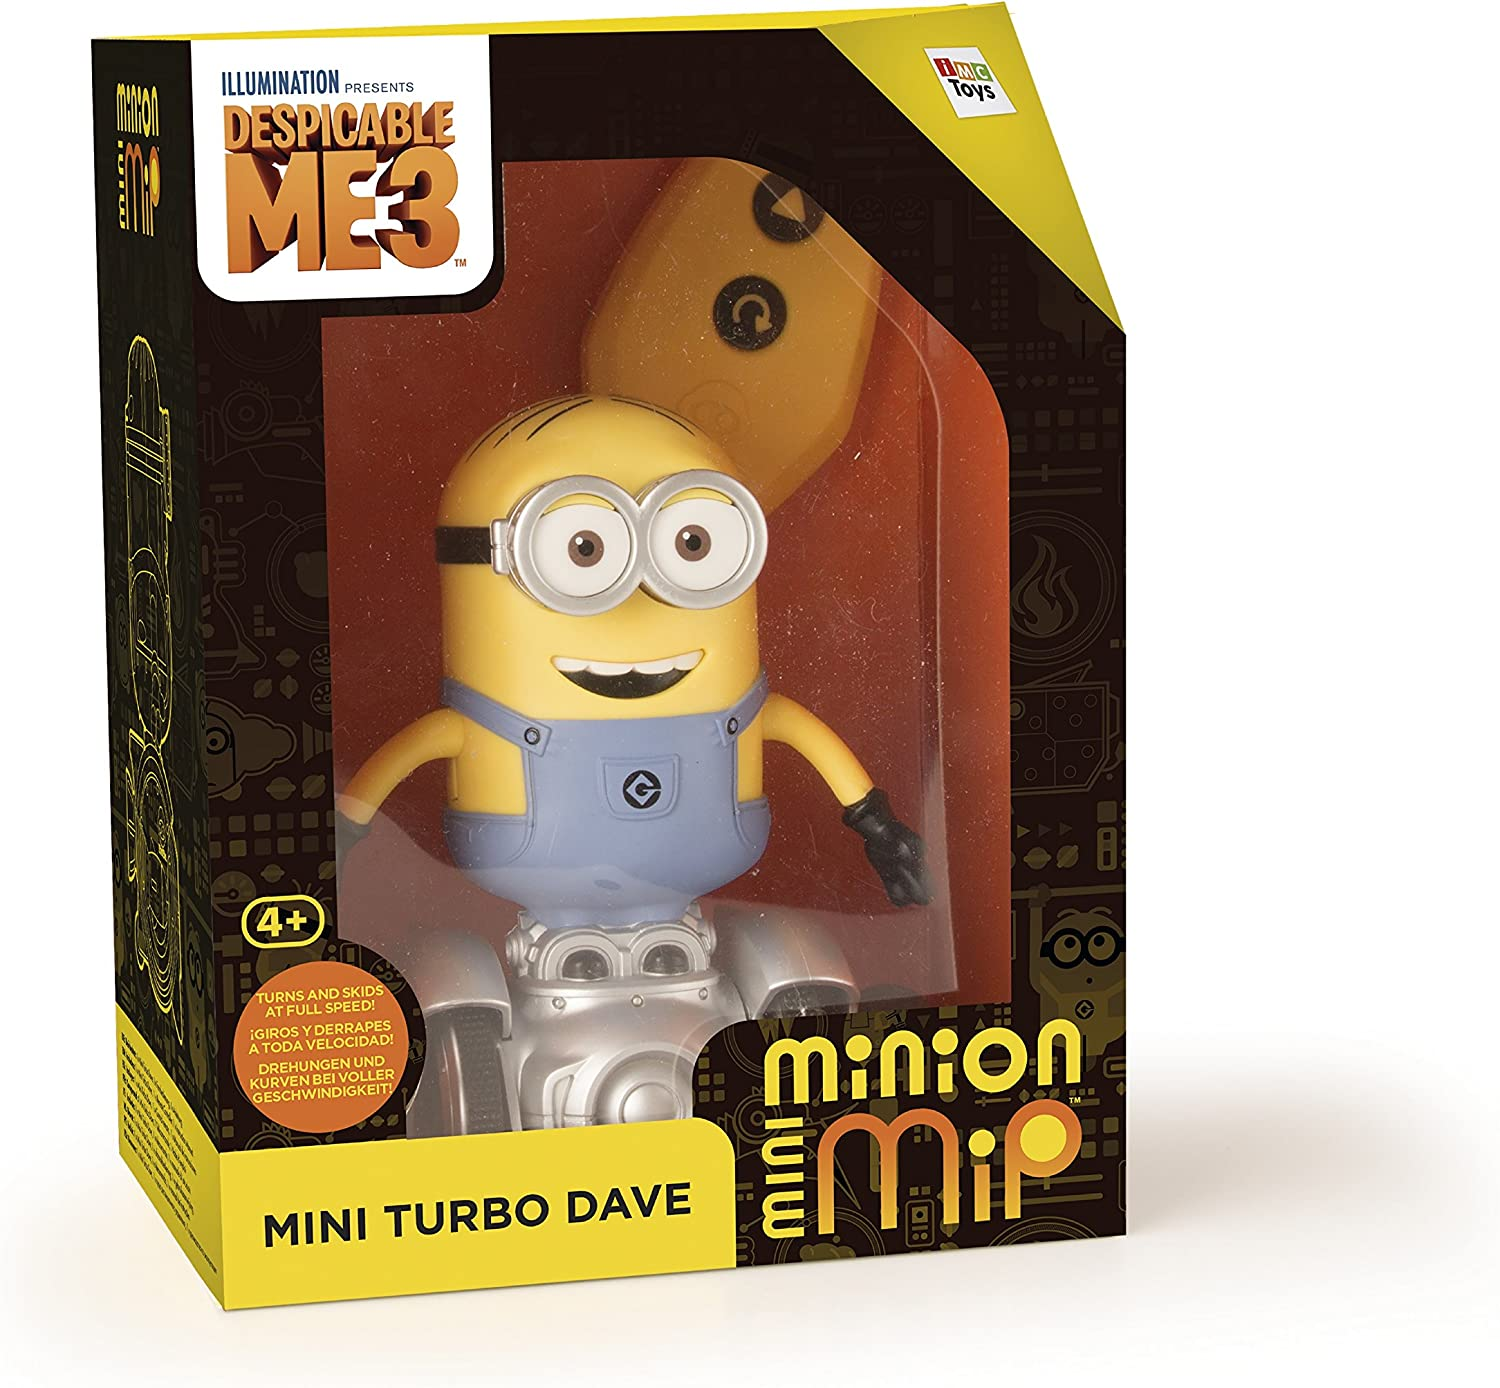 MINIONS IMC Toys 375369 - Vehículos RC Mini Turbo Dave: Amazon.es ...